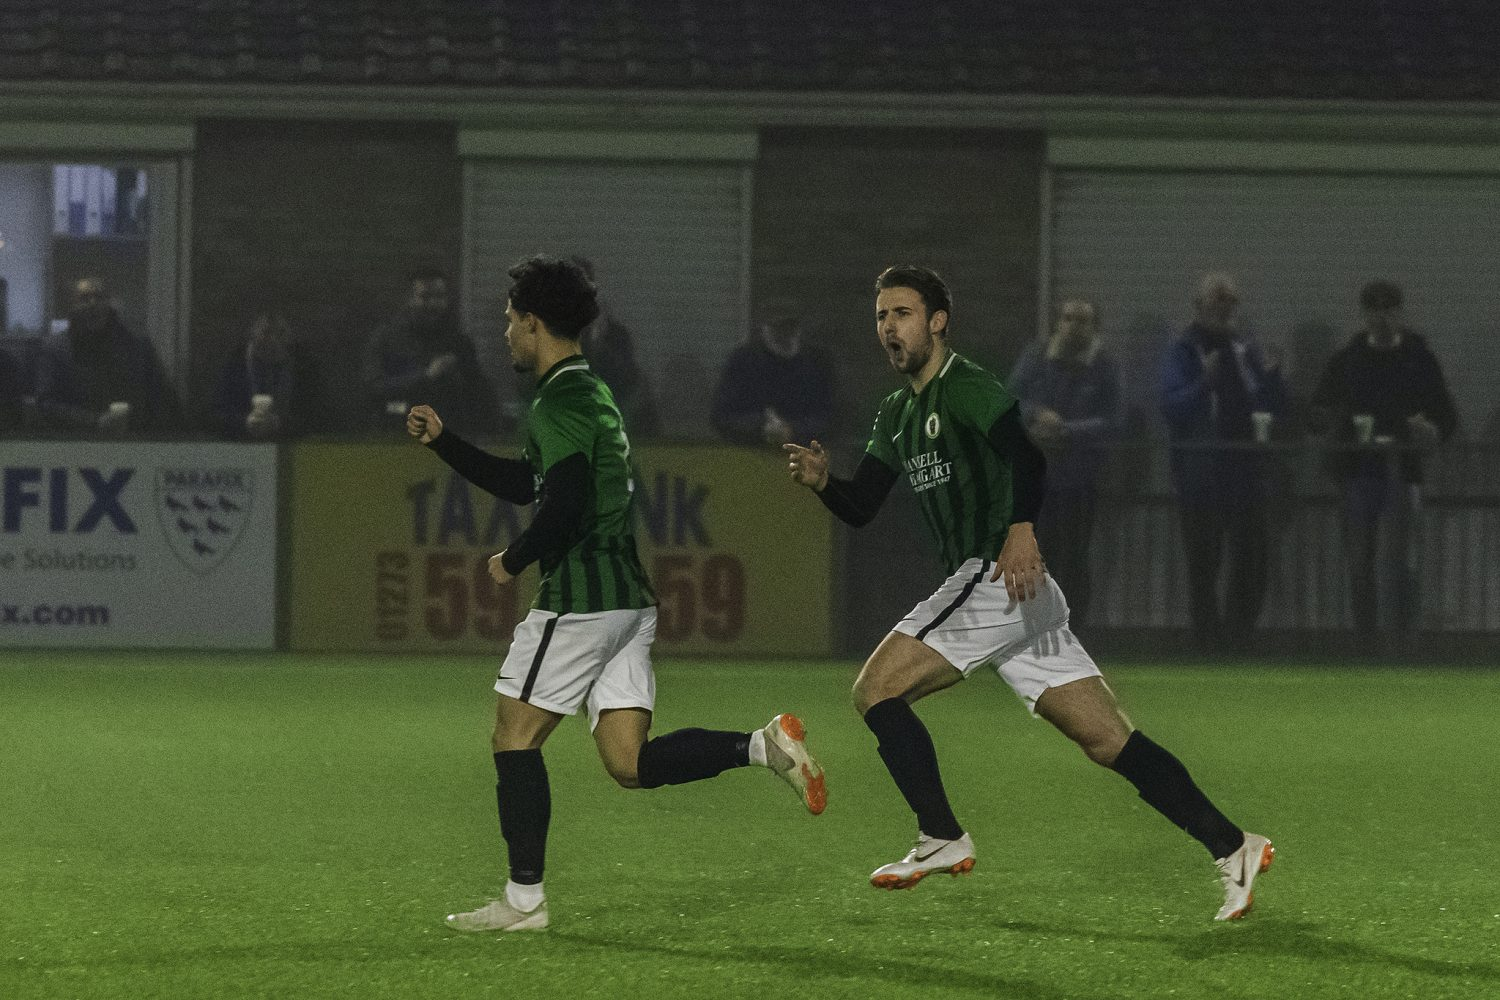 Gallery: Haywards Heath Town – SSC (N)